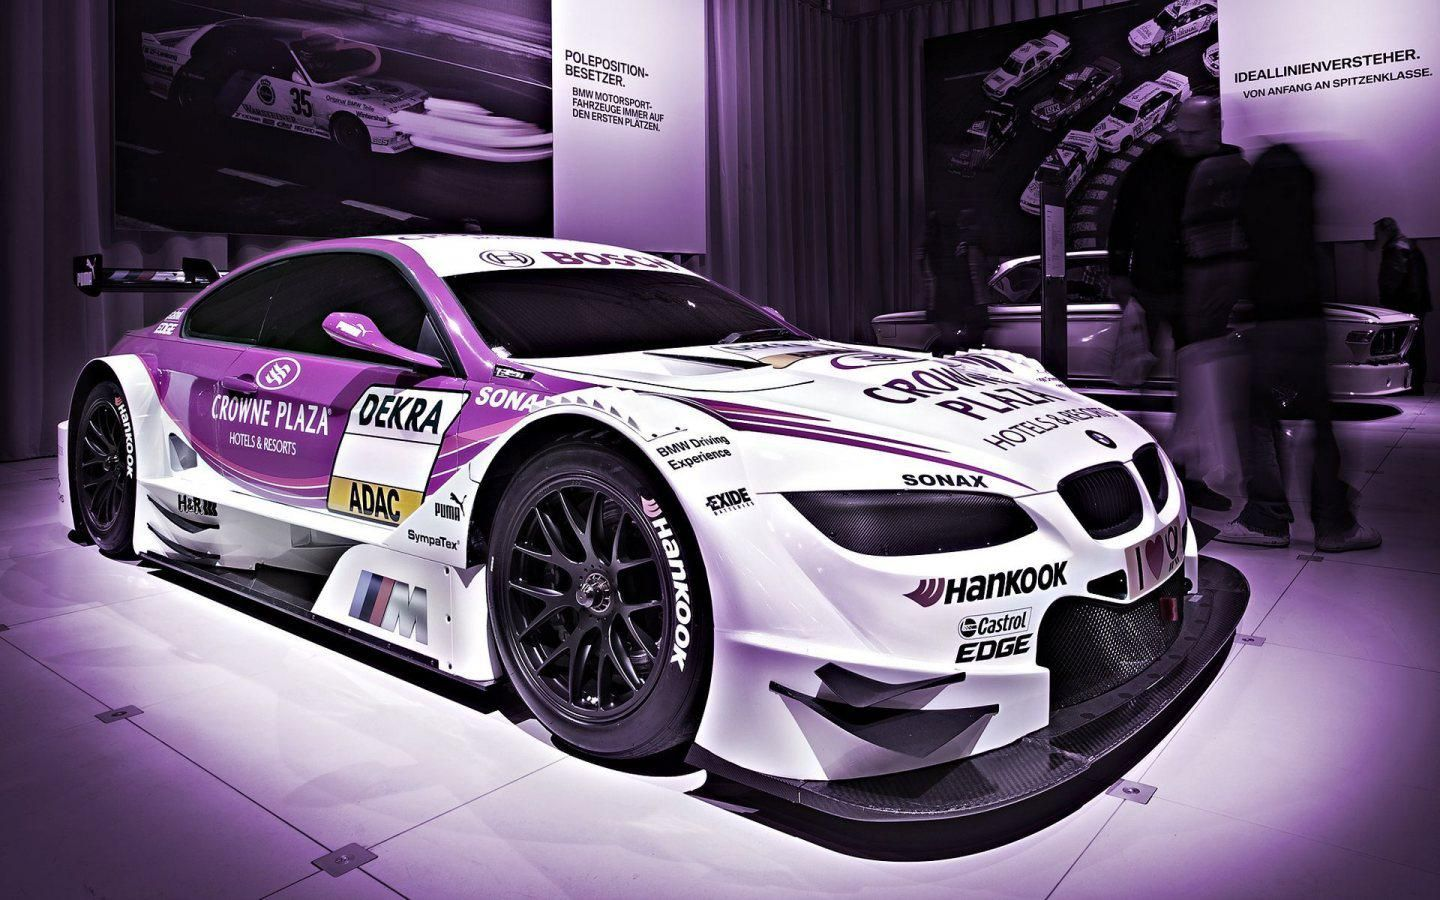 Bmw Racing Car Hd Wallpaper Cool Hd Wallpapers Carros